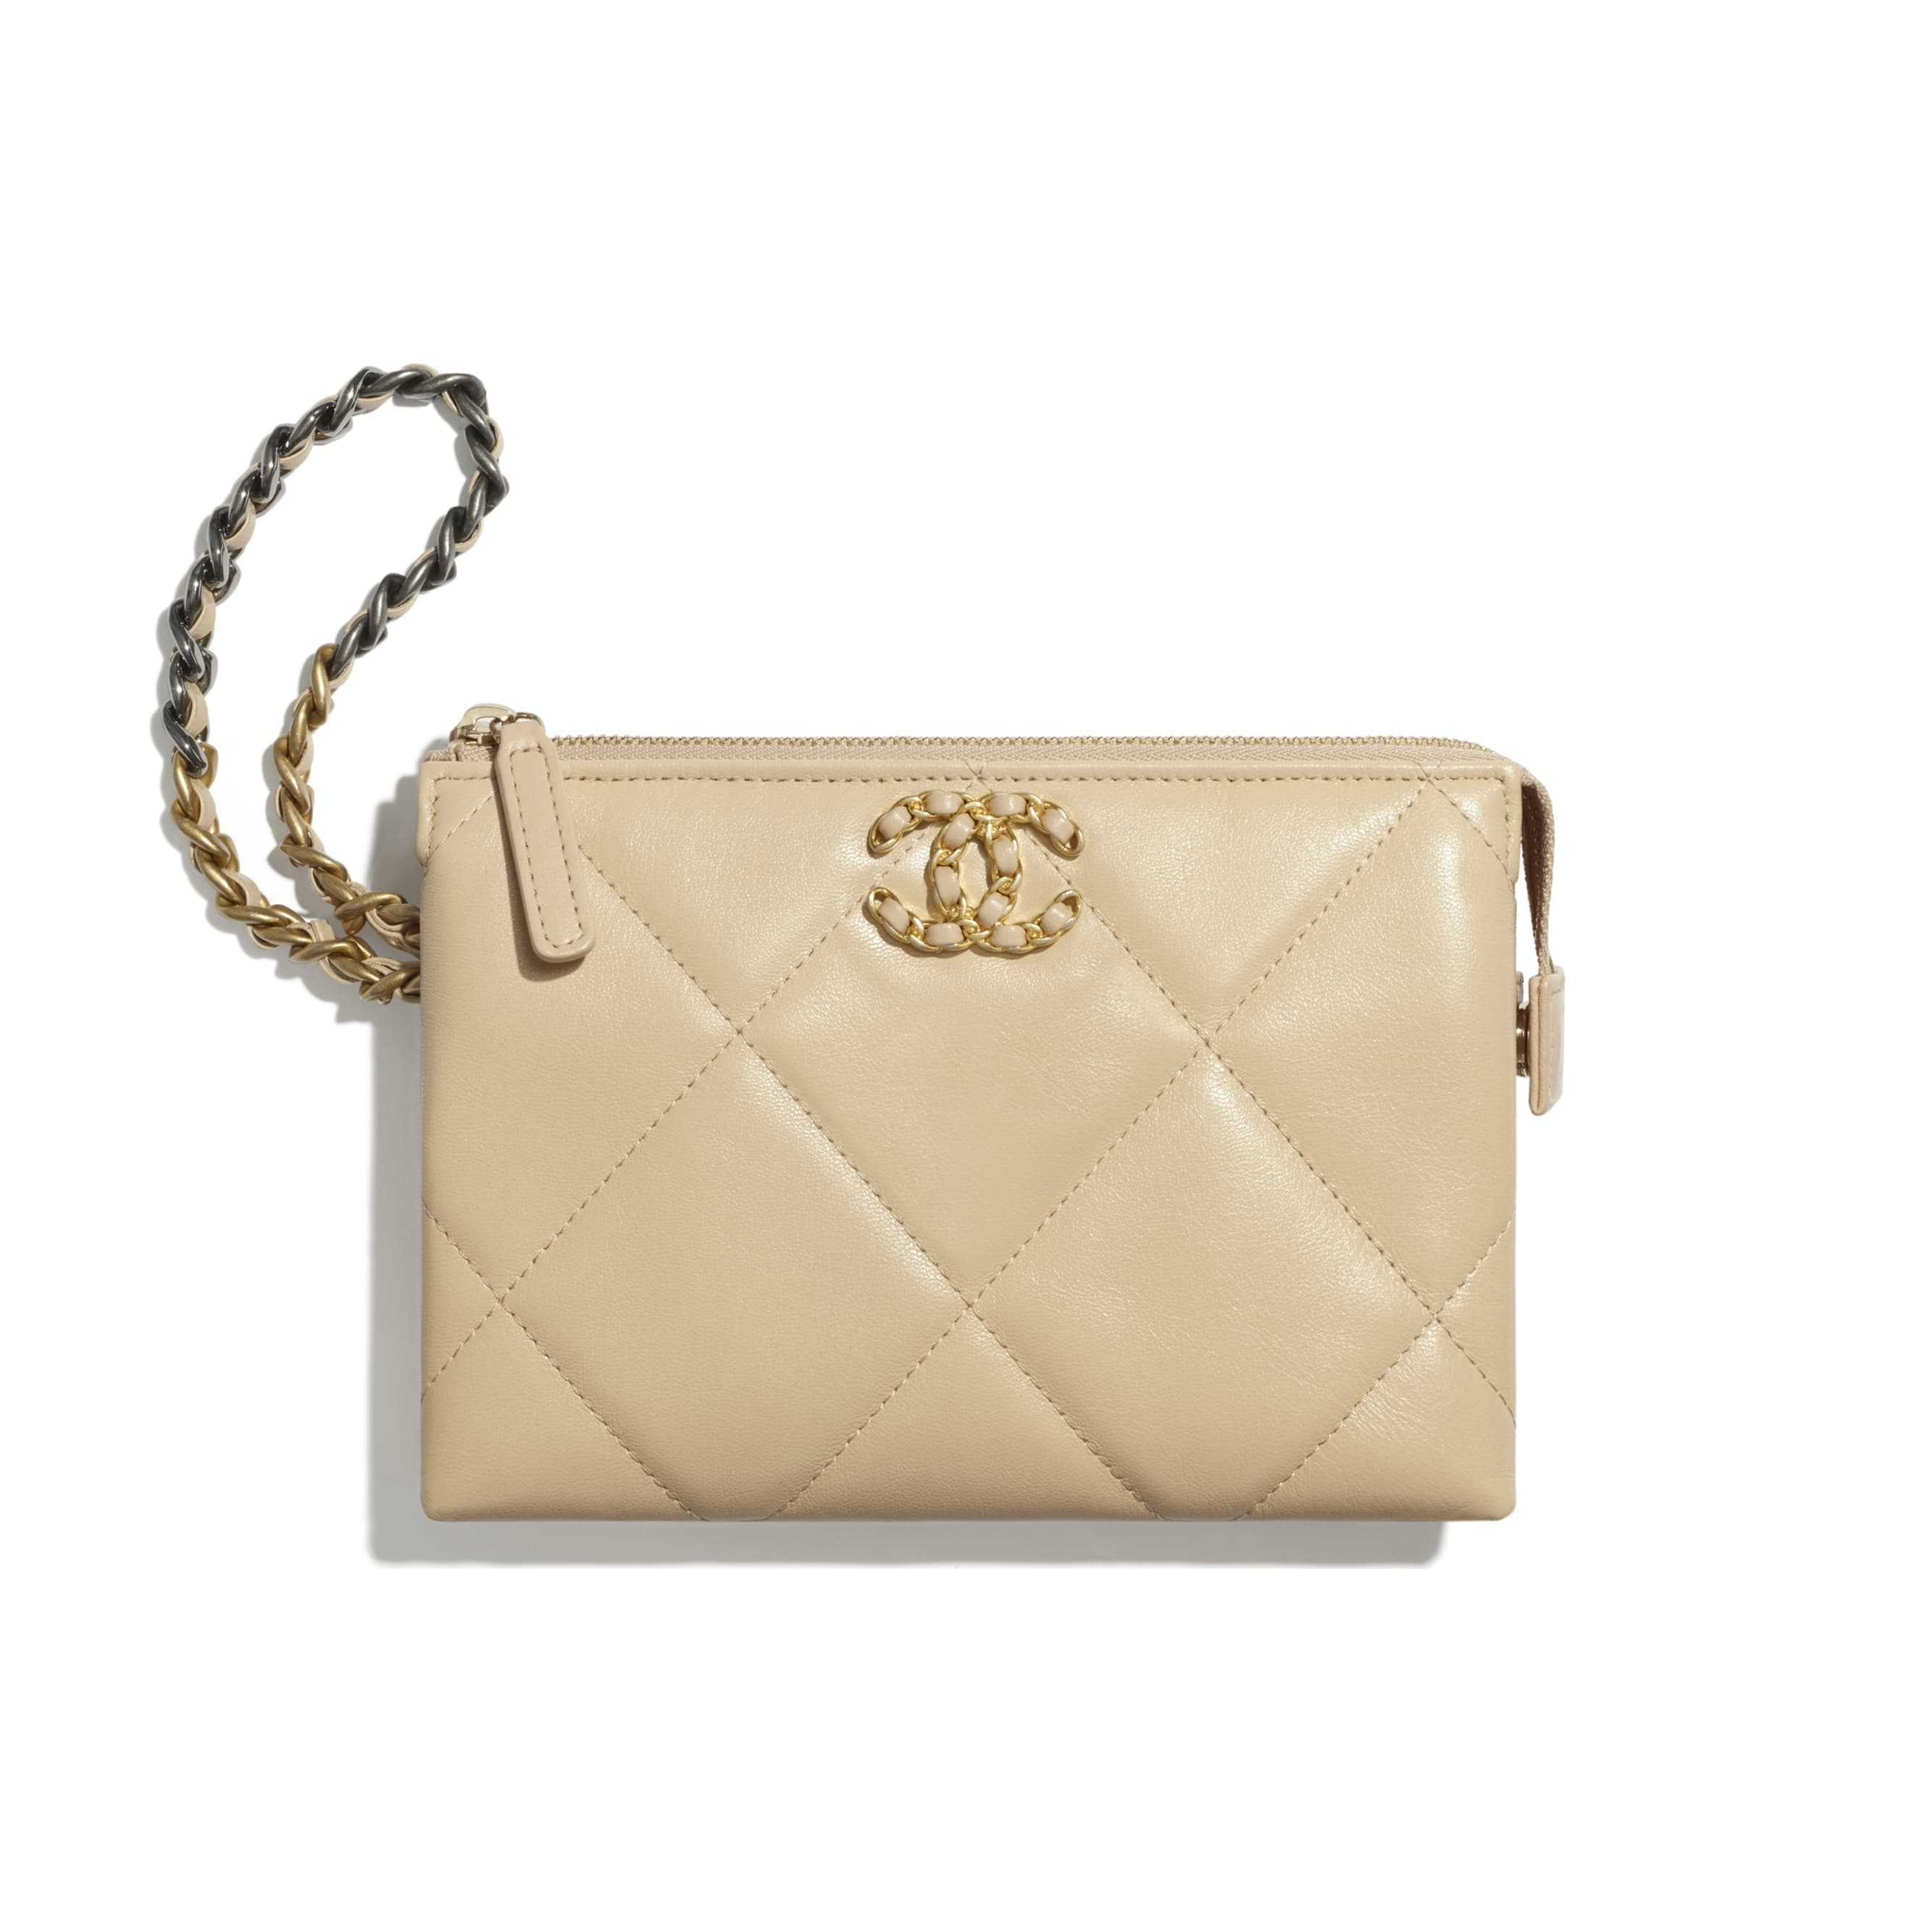 CHANEL 19 Small Pouch with Handle - Beige - Shiny Goatskin, Gold-Tone, Silver-Tone & Ruthenium-Finish Metal - CHANEL - Default view - see standard sized version